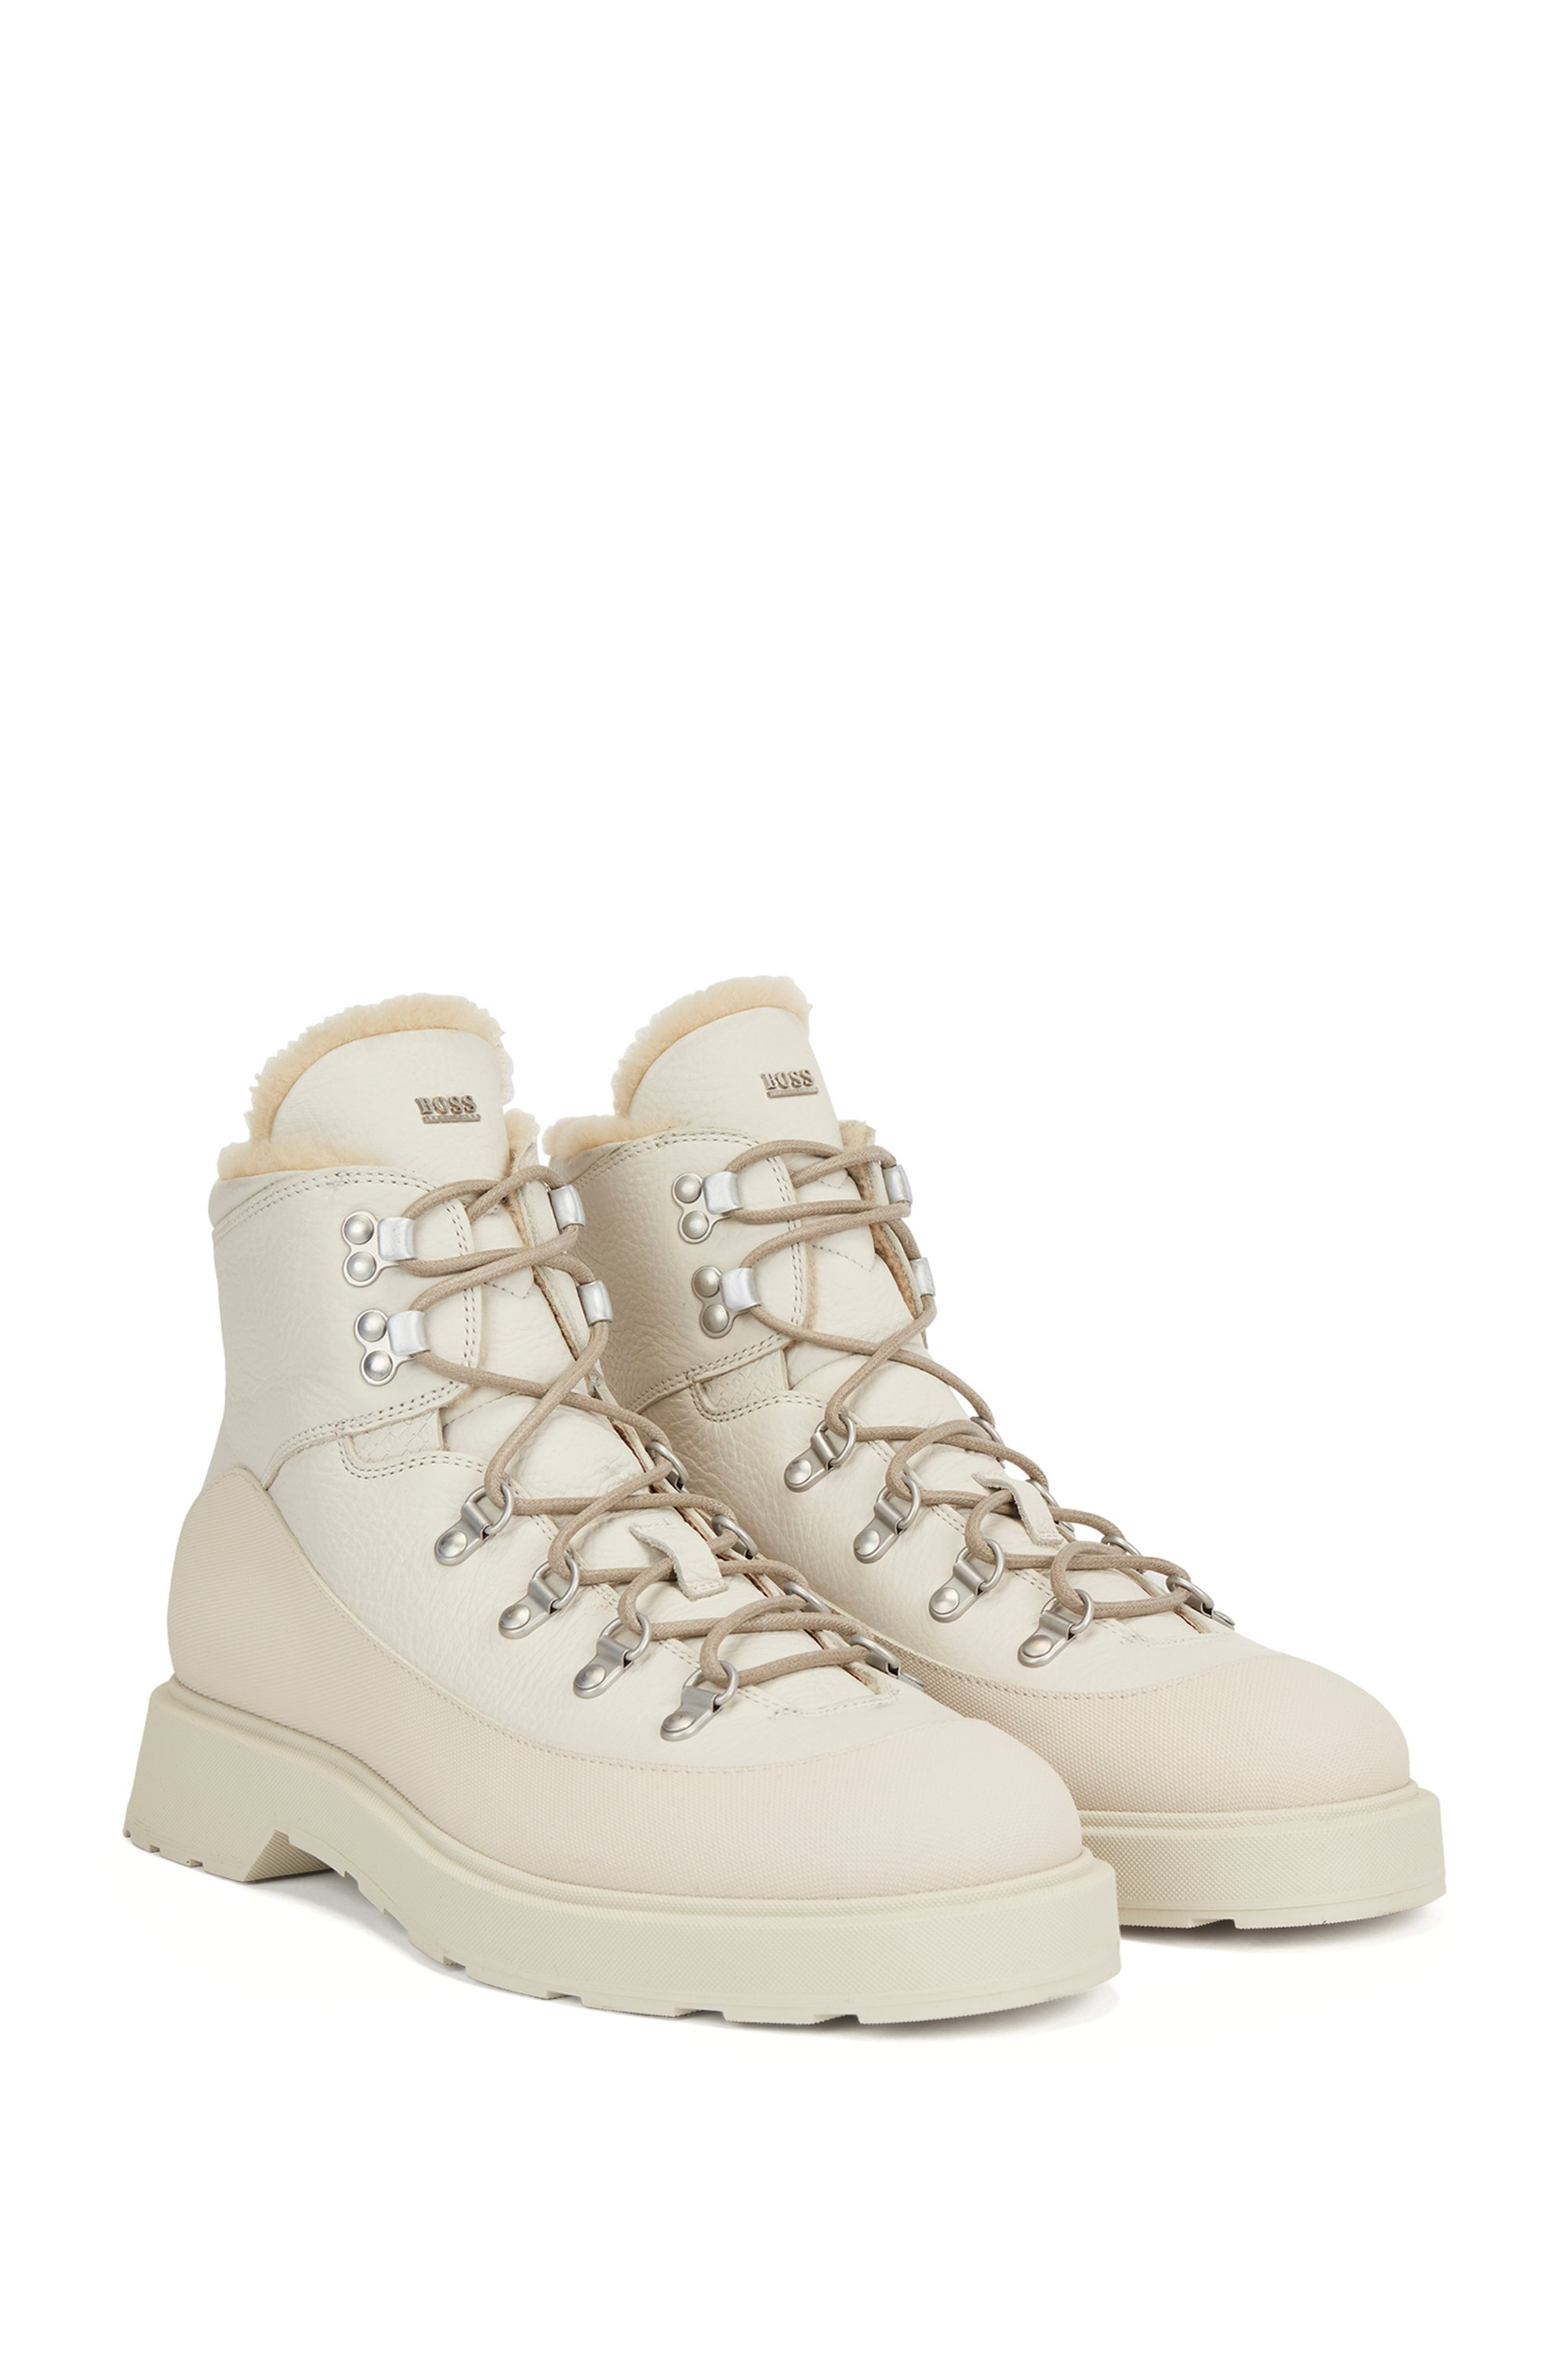 Hiking-style boots in printed leather with shearling lining